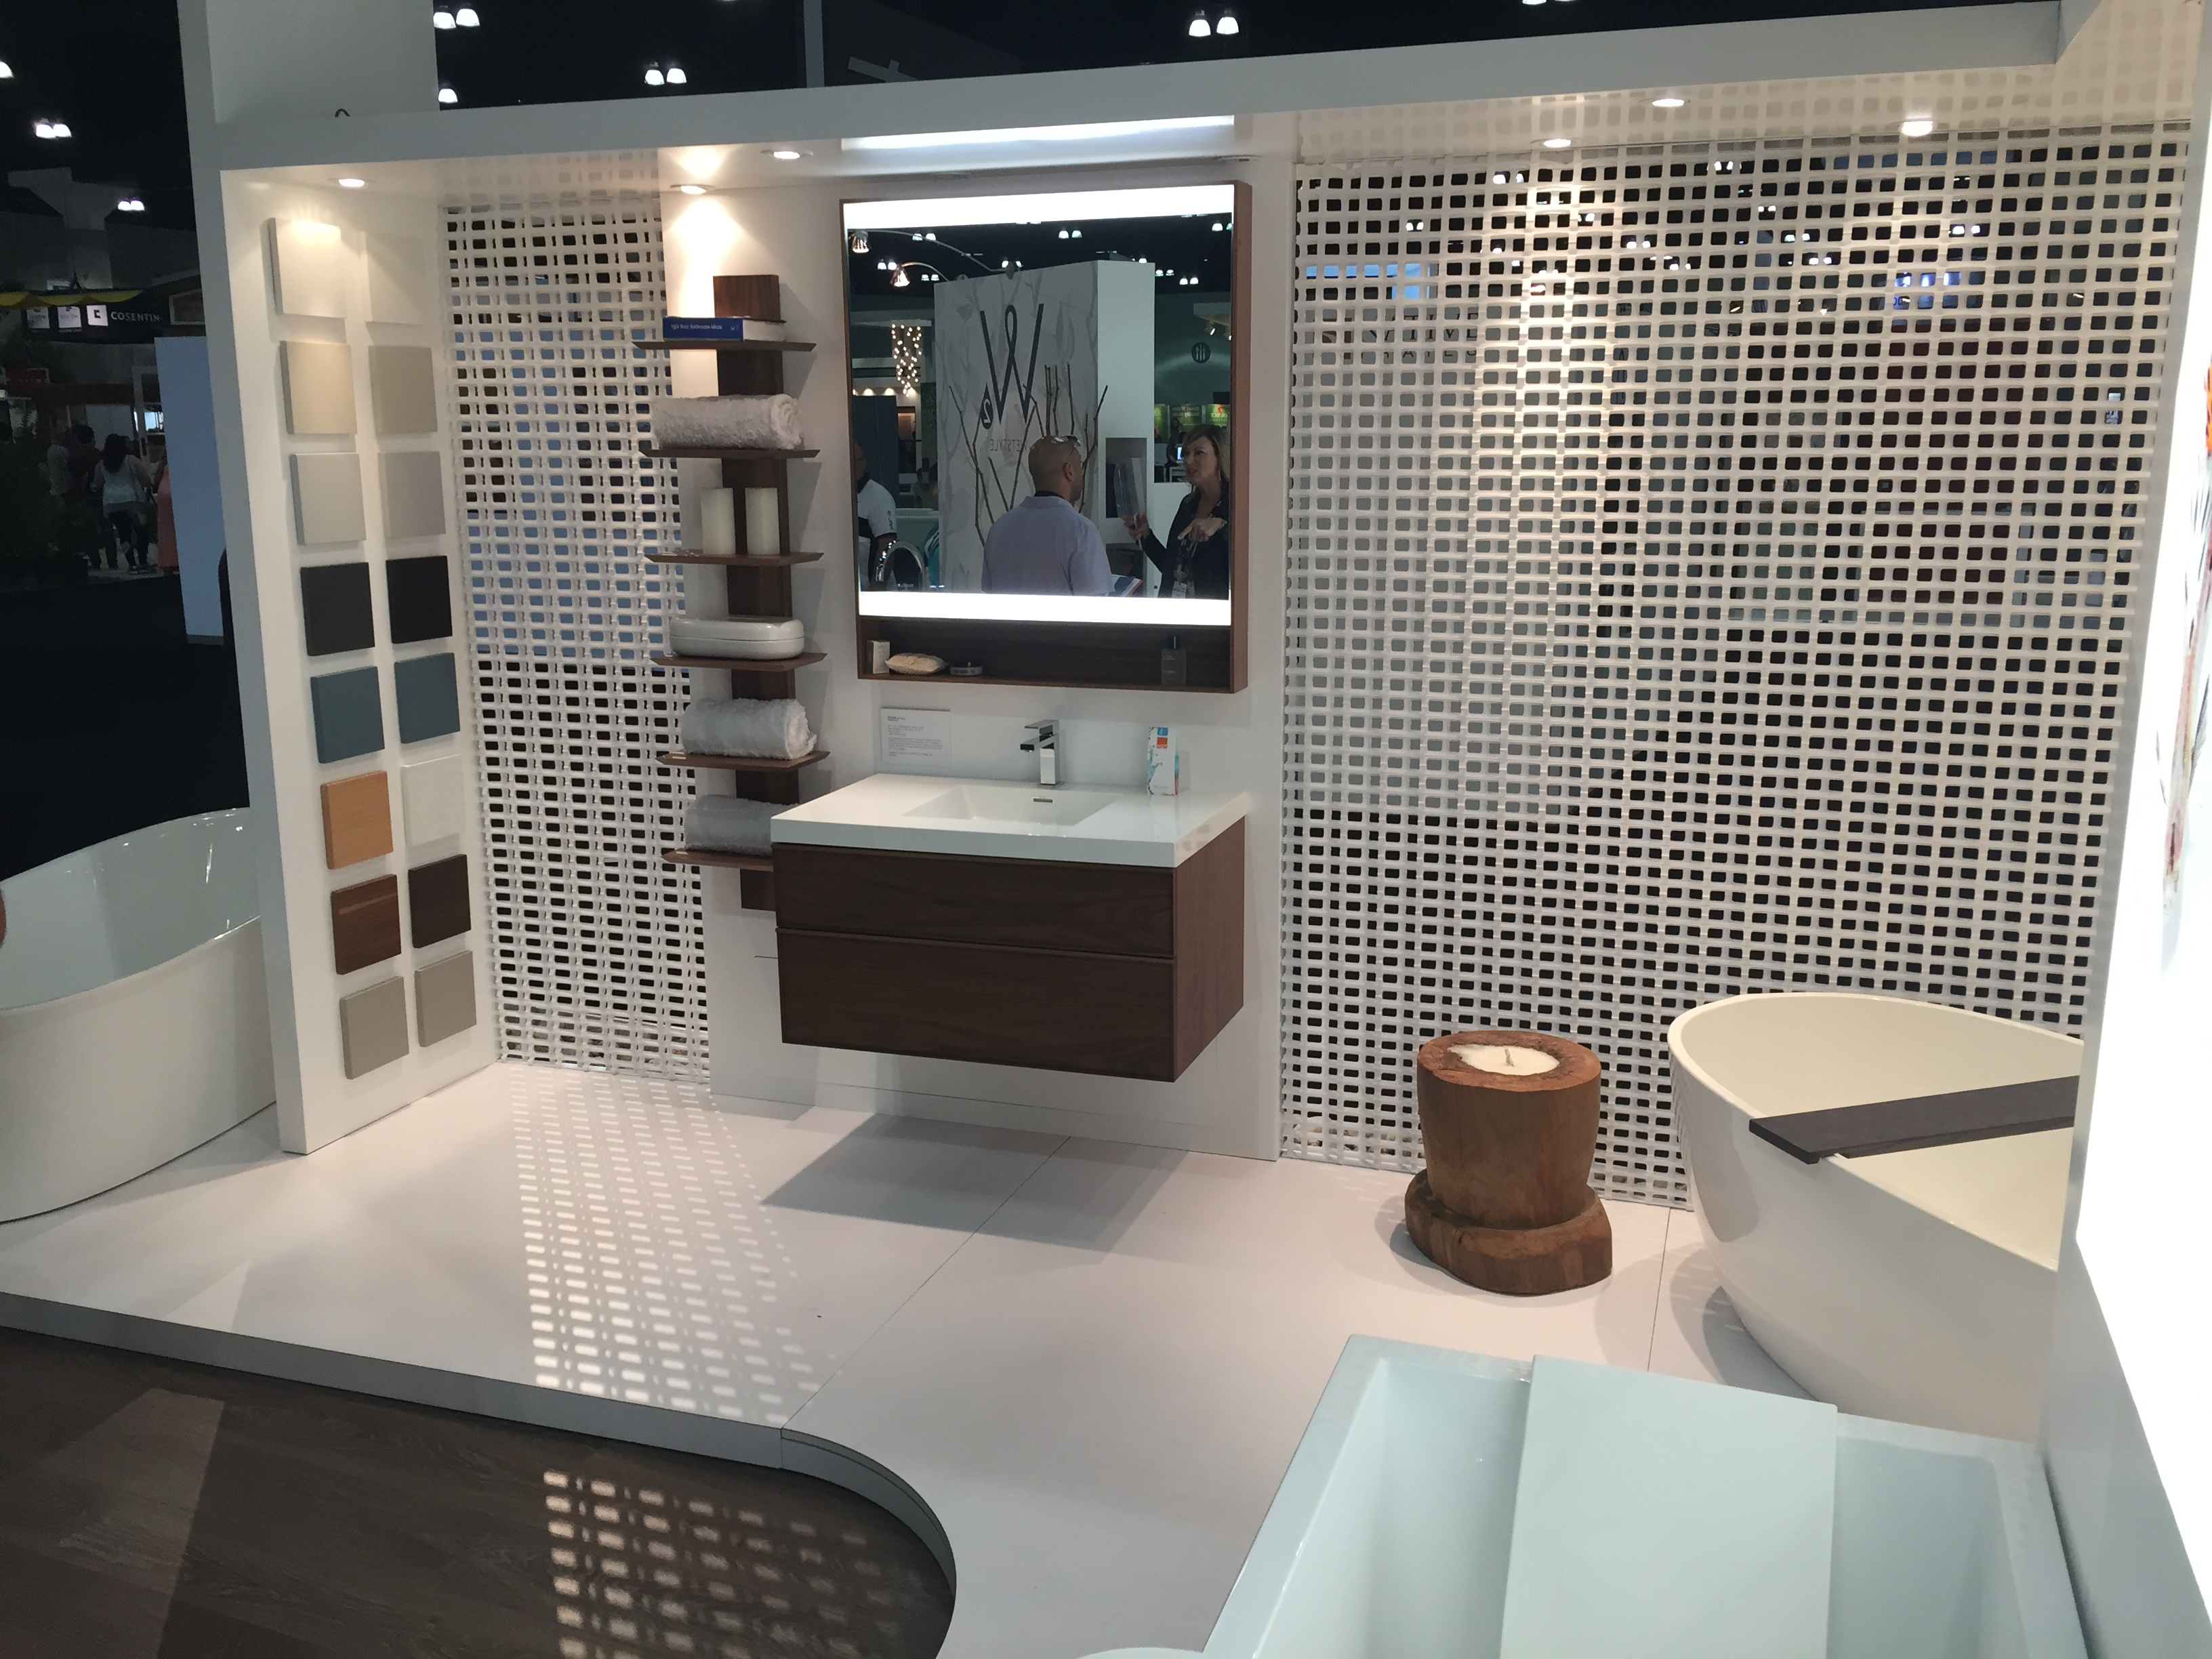 Our Visit to the Dwell Show Part 2 | International Bath \u0026 Tile